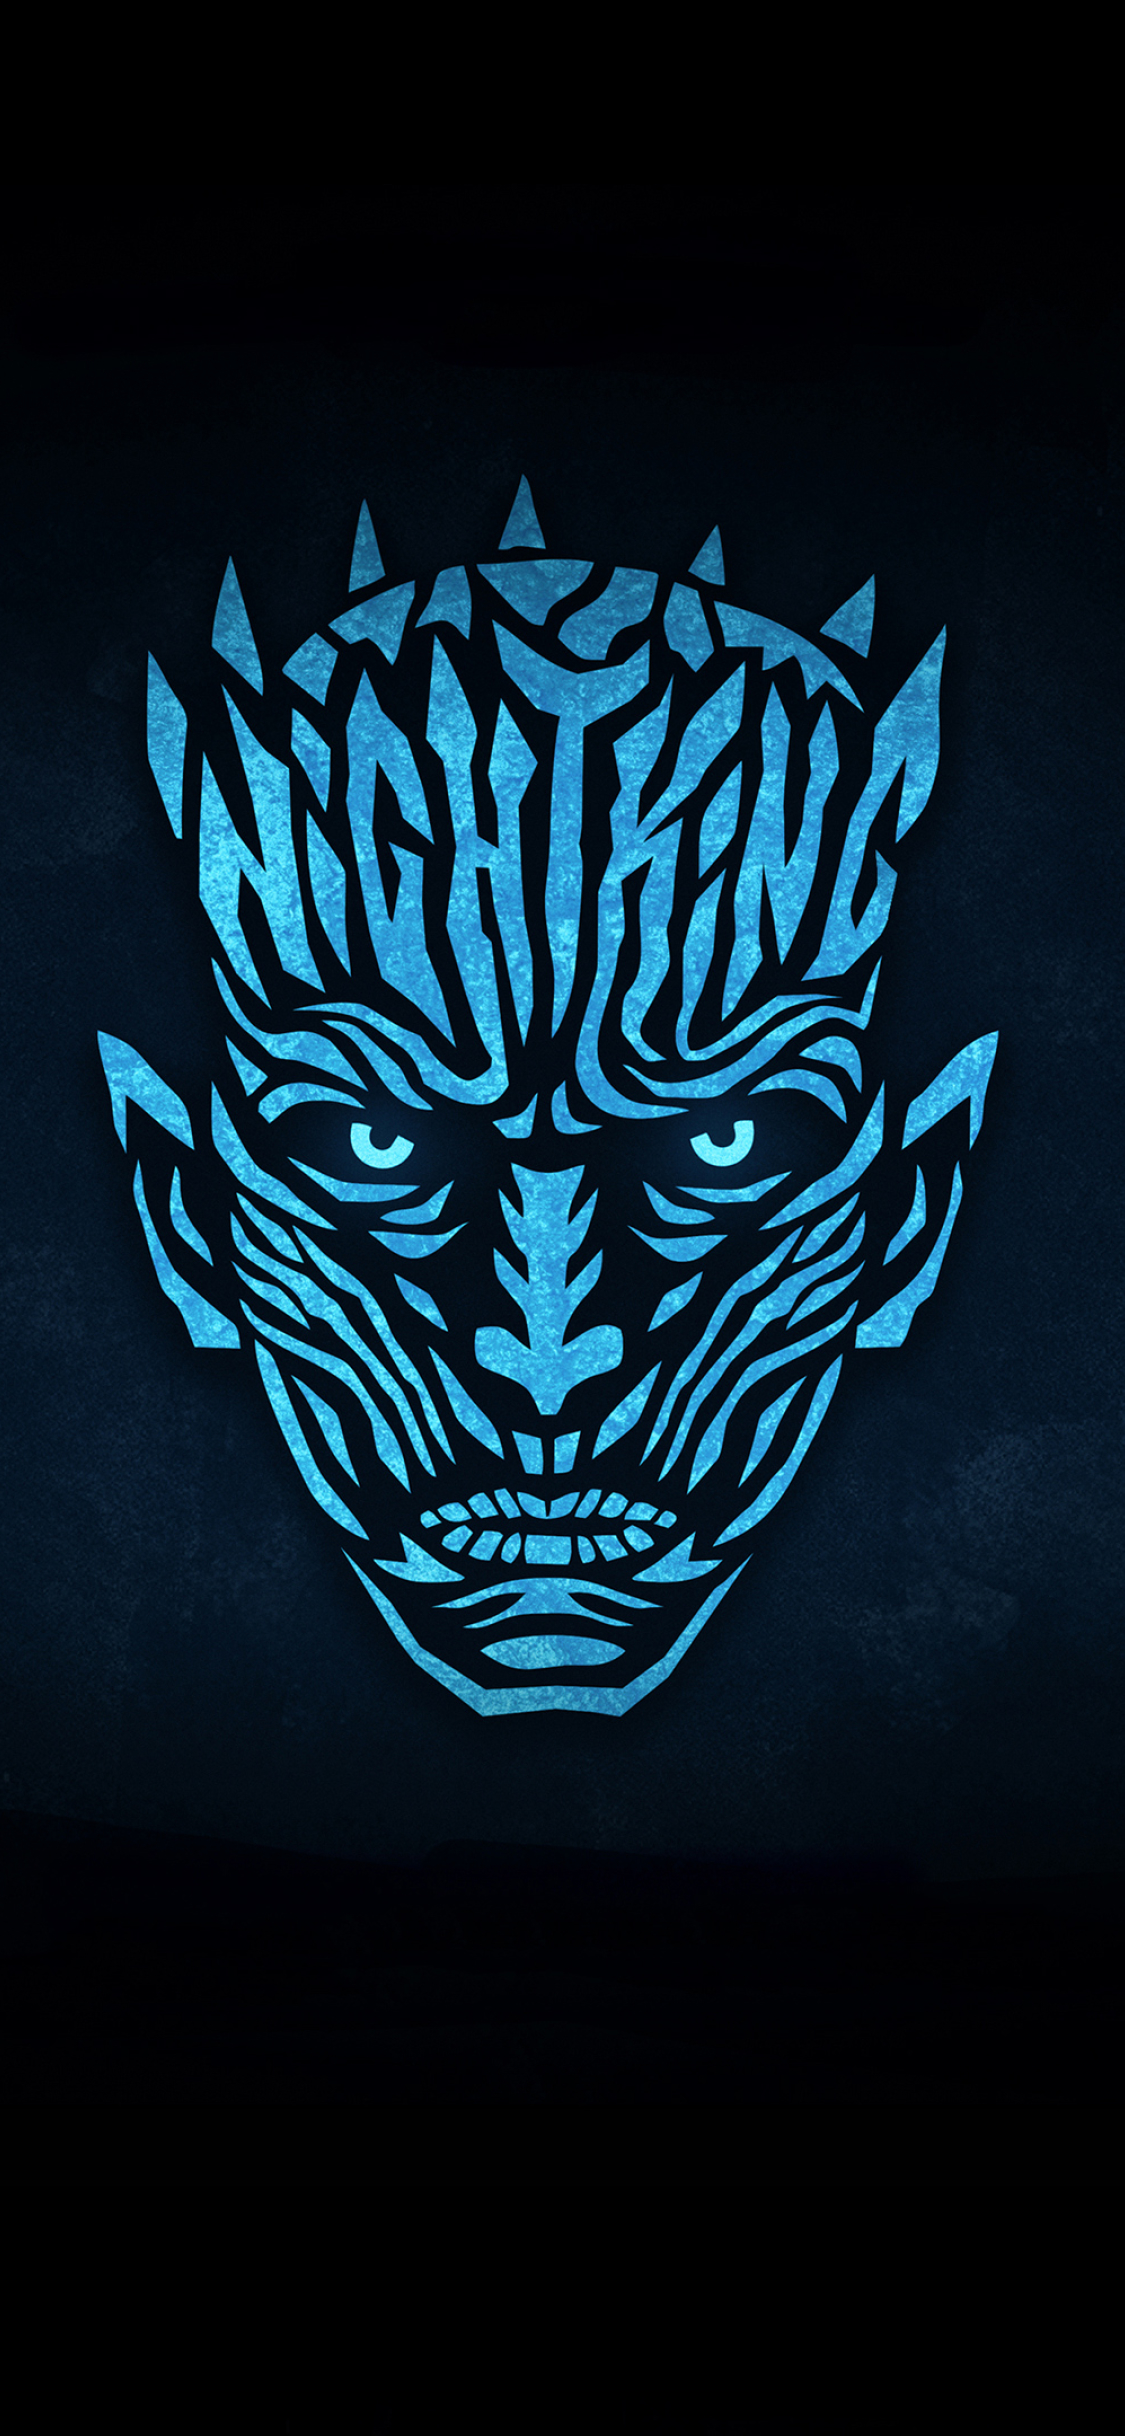 1125x2436 Night King Minimalist From Game Of Thrones Iphone